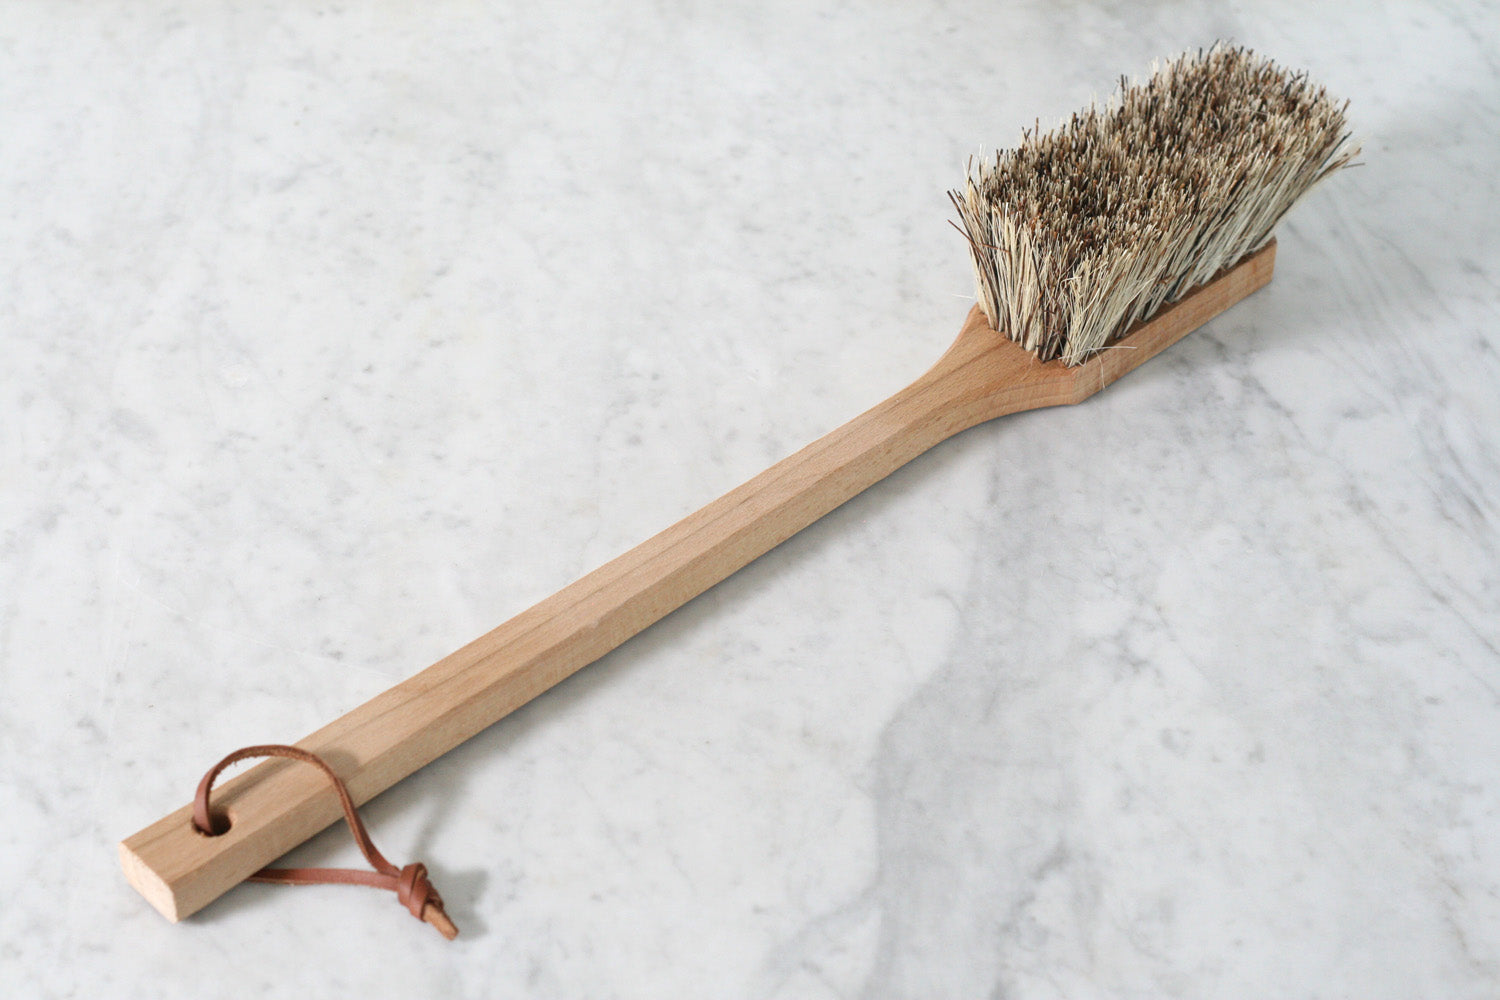 Burstenhaus Redecker Long Handled Outdoor Brush